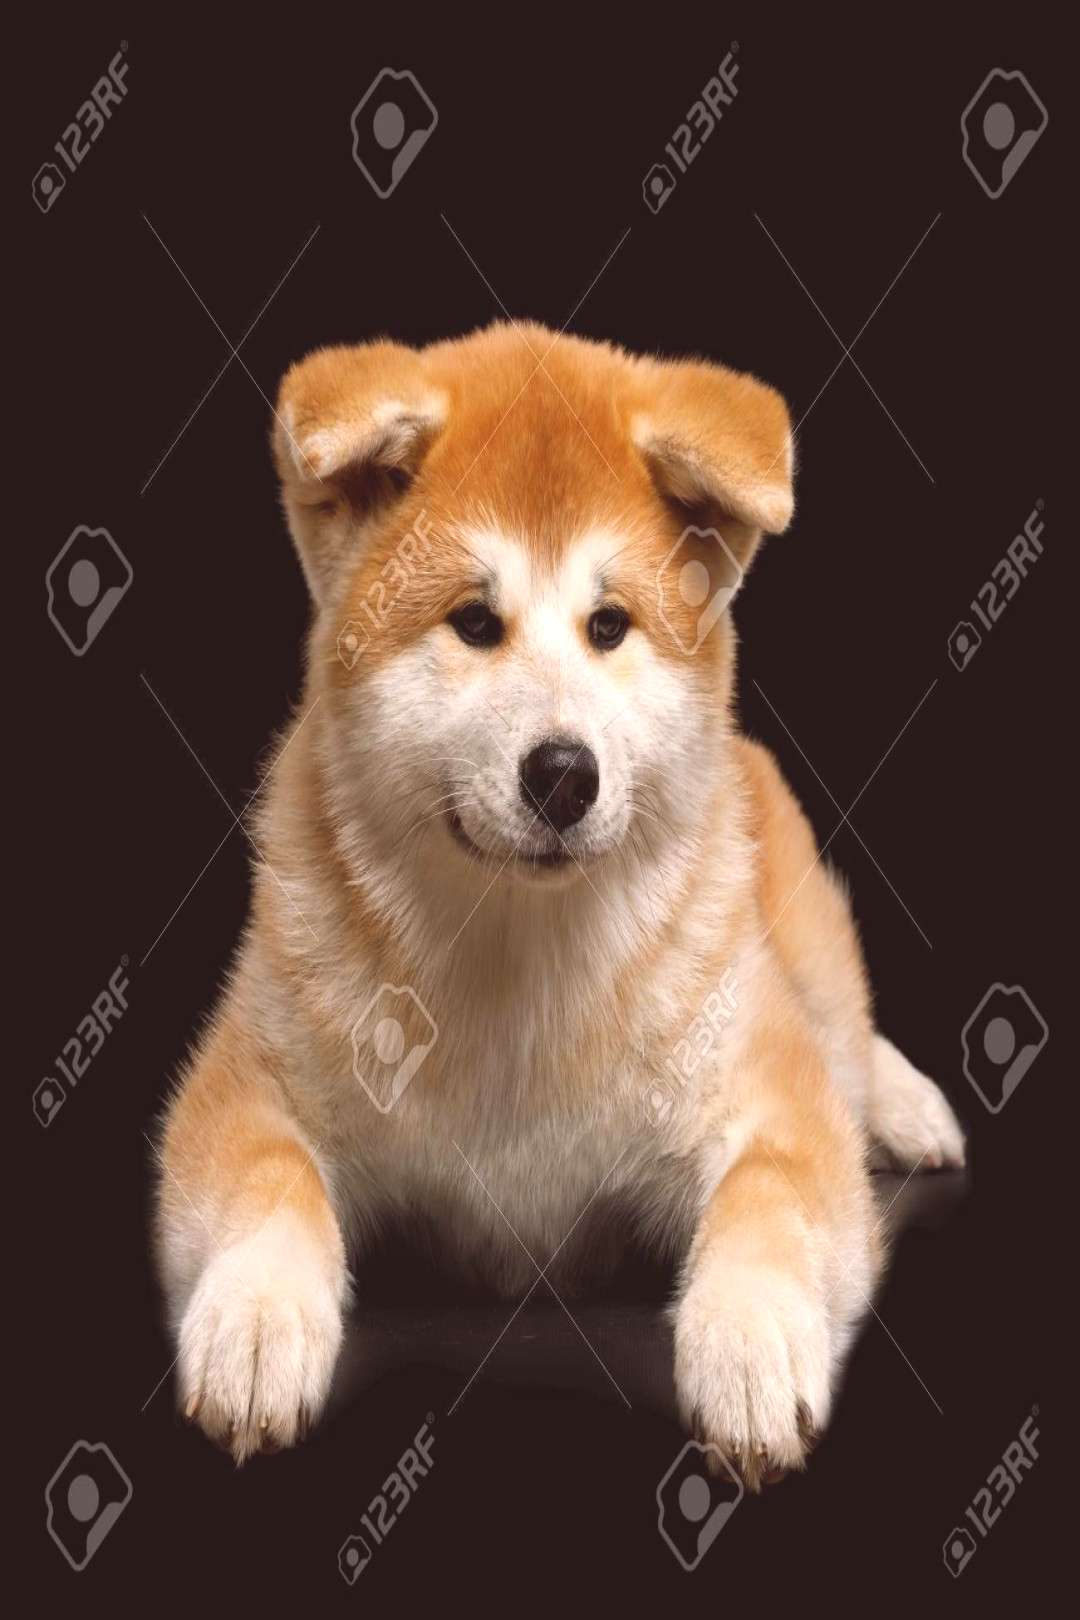 Cute Akita Inu Puppy Lying on Isolated Black Background, front view ,